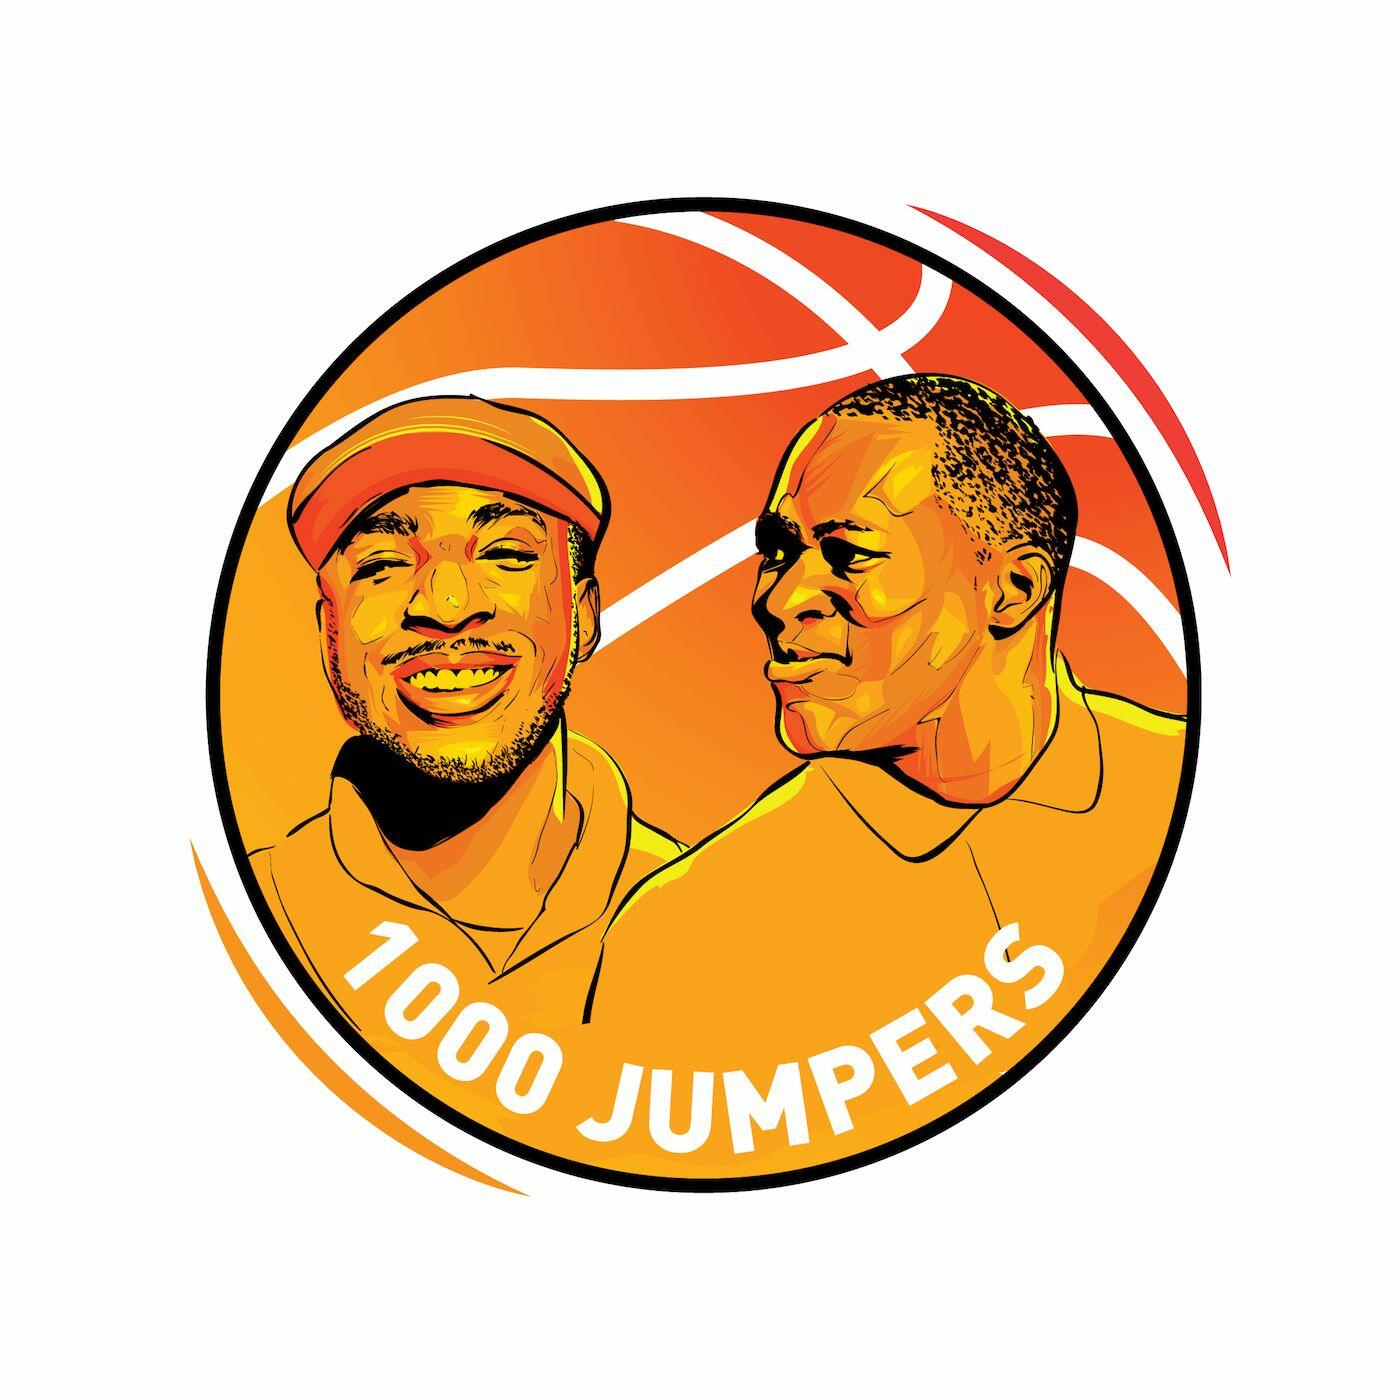 Listen to the Dapper J & Bobby George Presents: 1000 Jumpers Episode - All Star on iHeartRadio | iHeartRadio